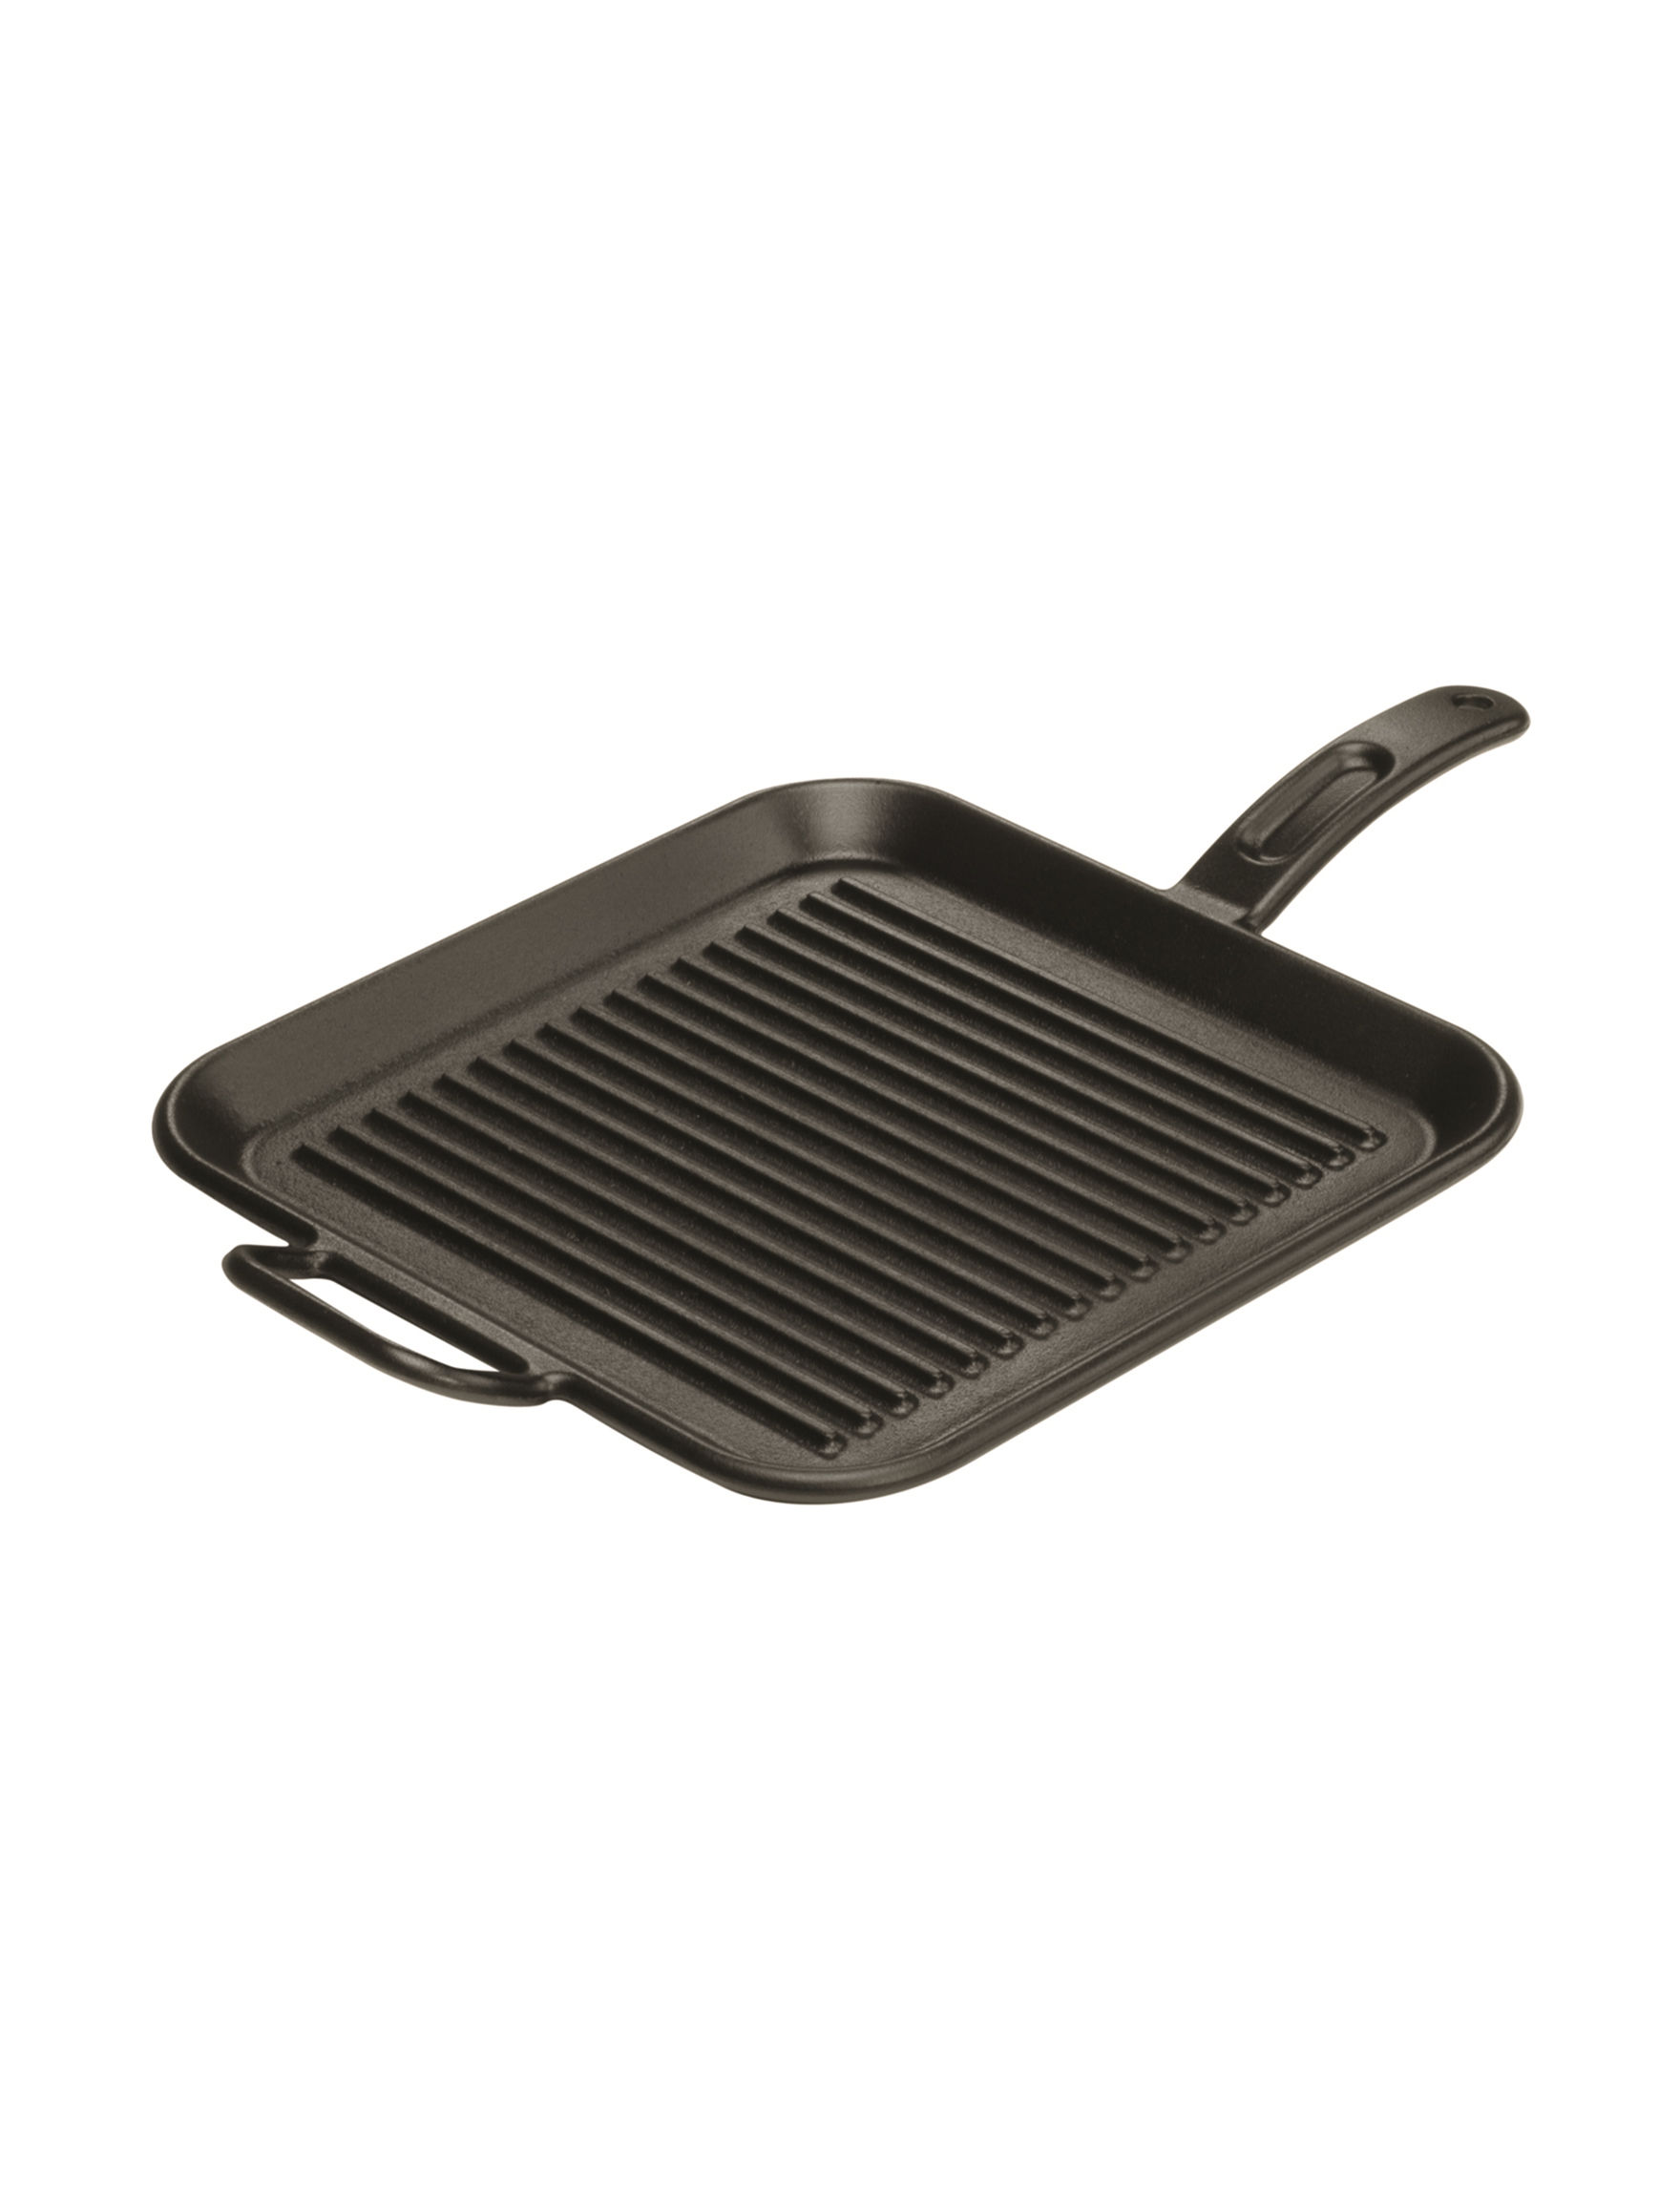 Lodge  Frying Pans & Skillets Cookware